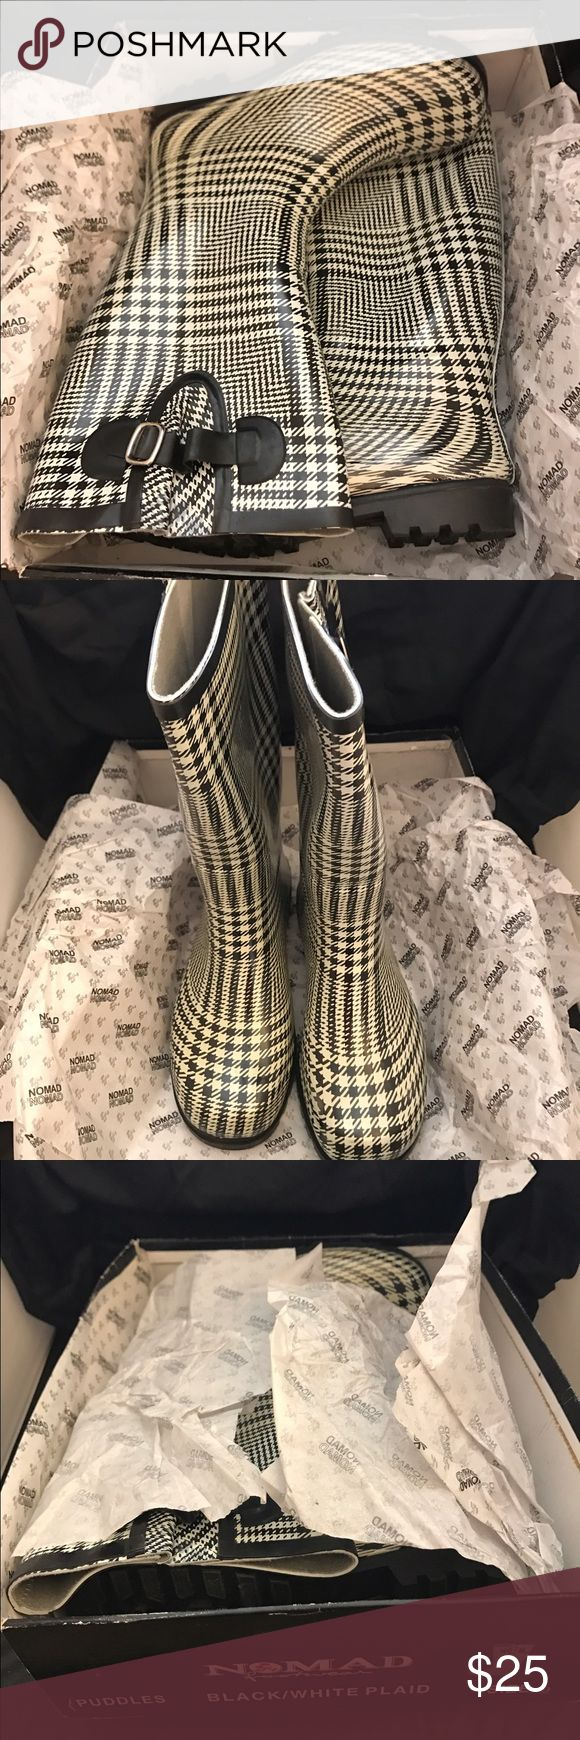 Nomad 'Puddles' Rain boots New in box, plaid houndstooth